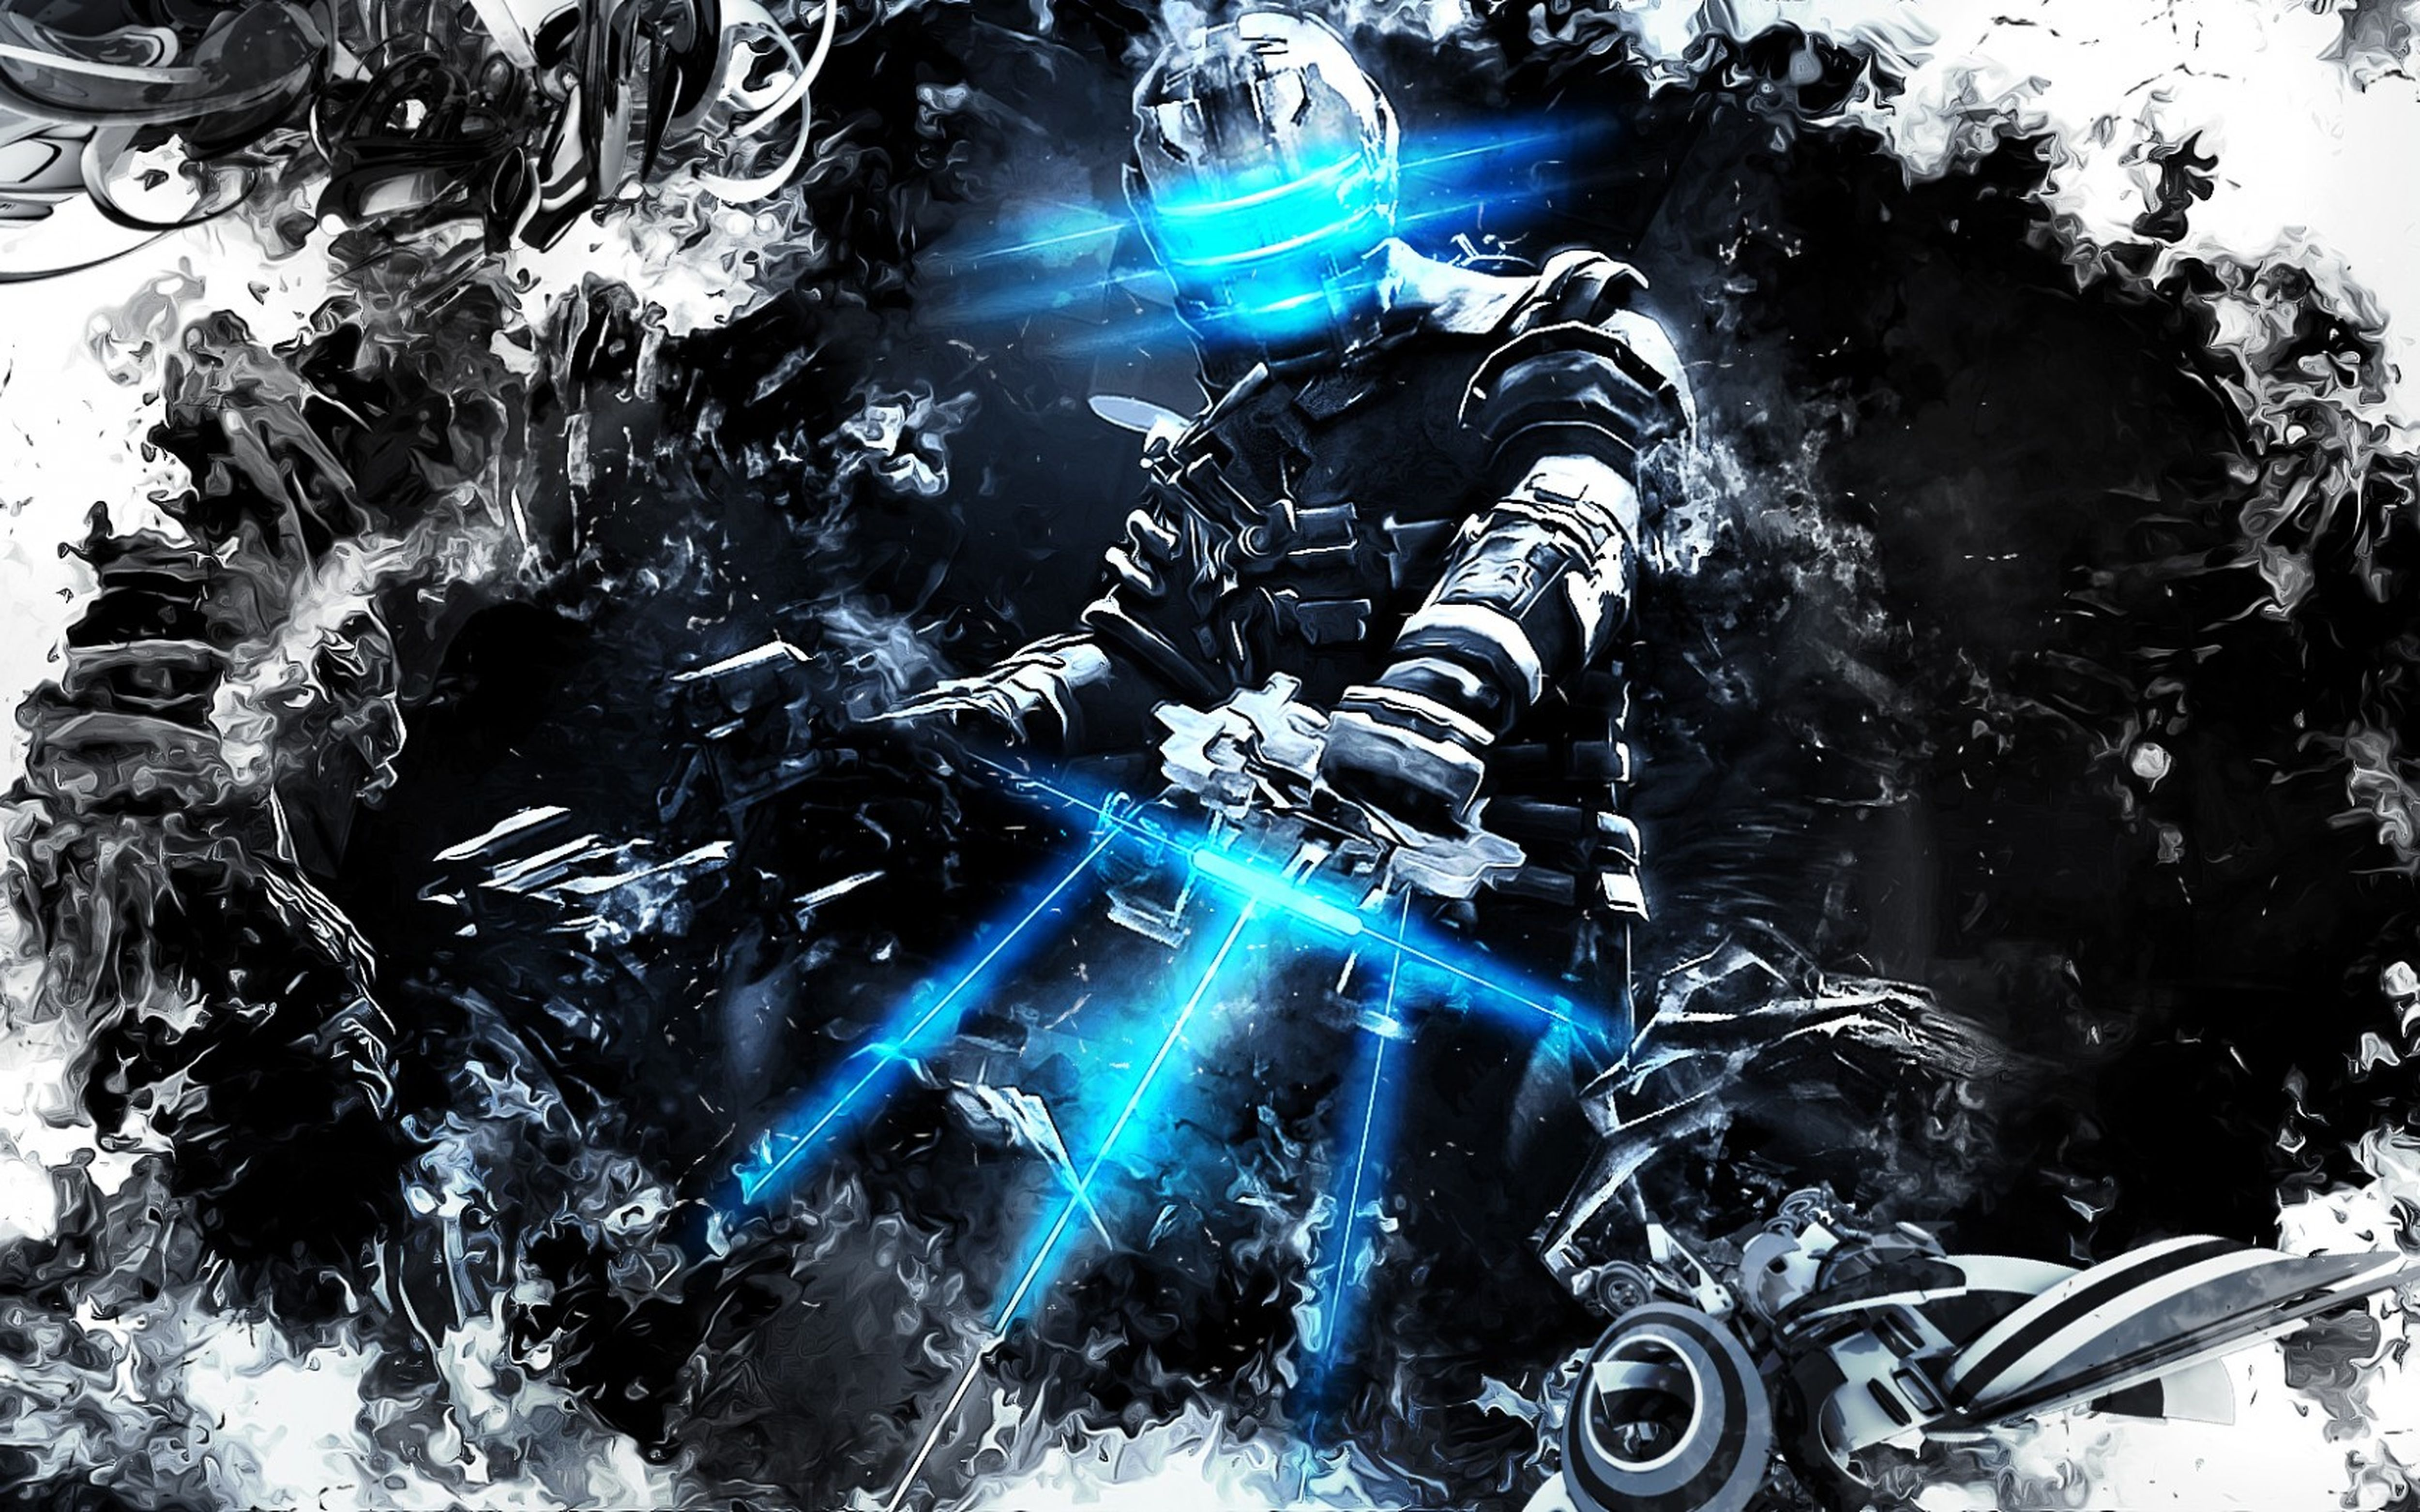 252 dead space hd wallpapers | background images - wallpaper abyss